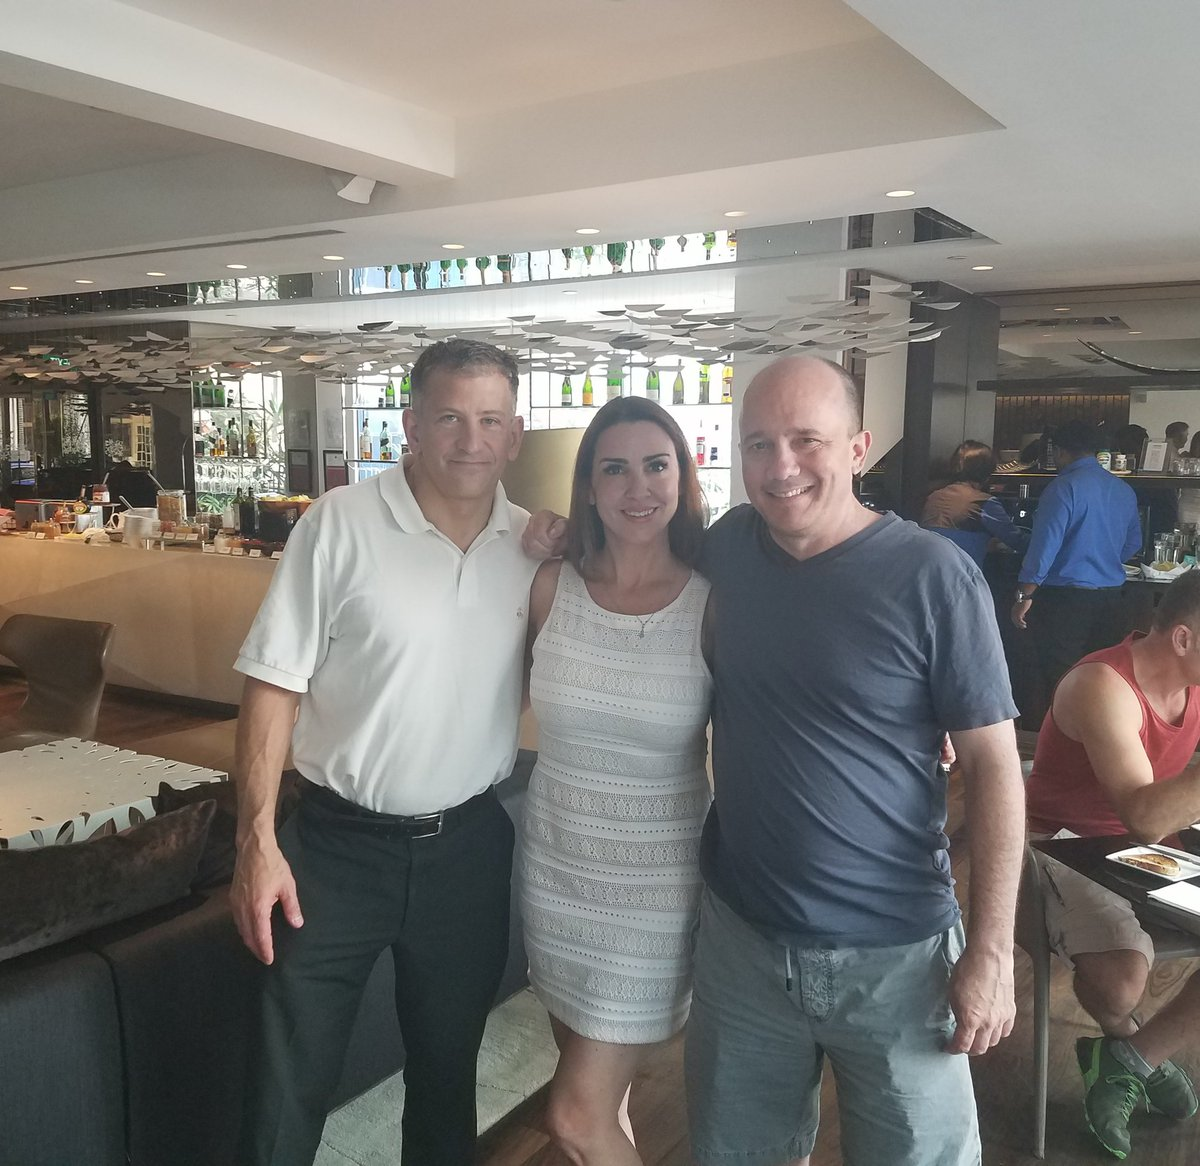 Sara A Carter On Twitter At Hotel In Singapore With Buddy Porter And Danielhoffmandc Getting Ready For Big Day Northkorea Summit Sara carter is a news reporter who has gone outside her comfort zone to ensure that the world gets truthful information. sara a carter on twitter at hotel in